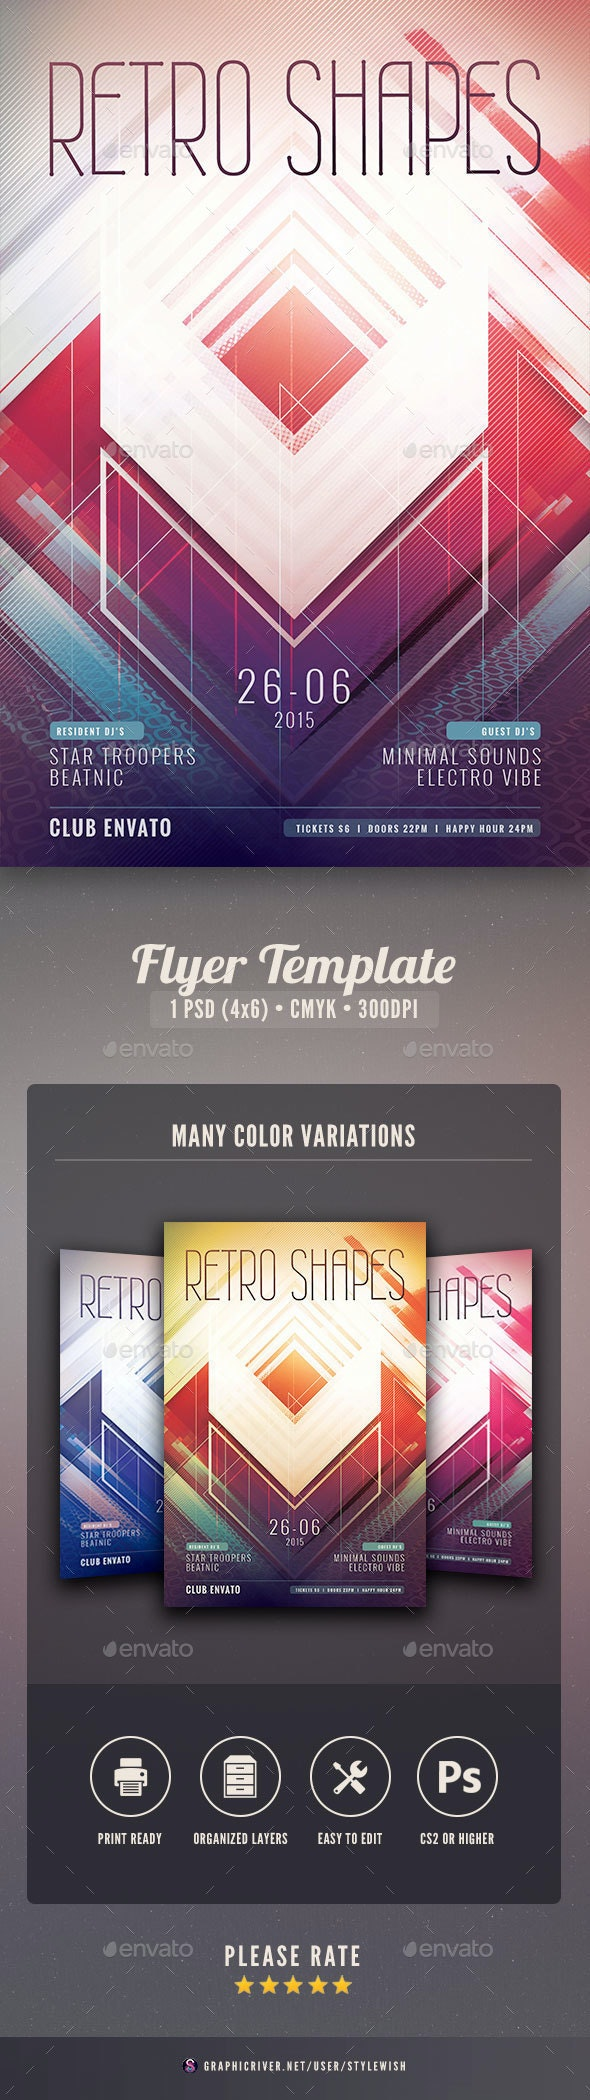 Retro Shapes Flyer - Clubs & Parties Events